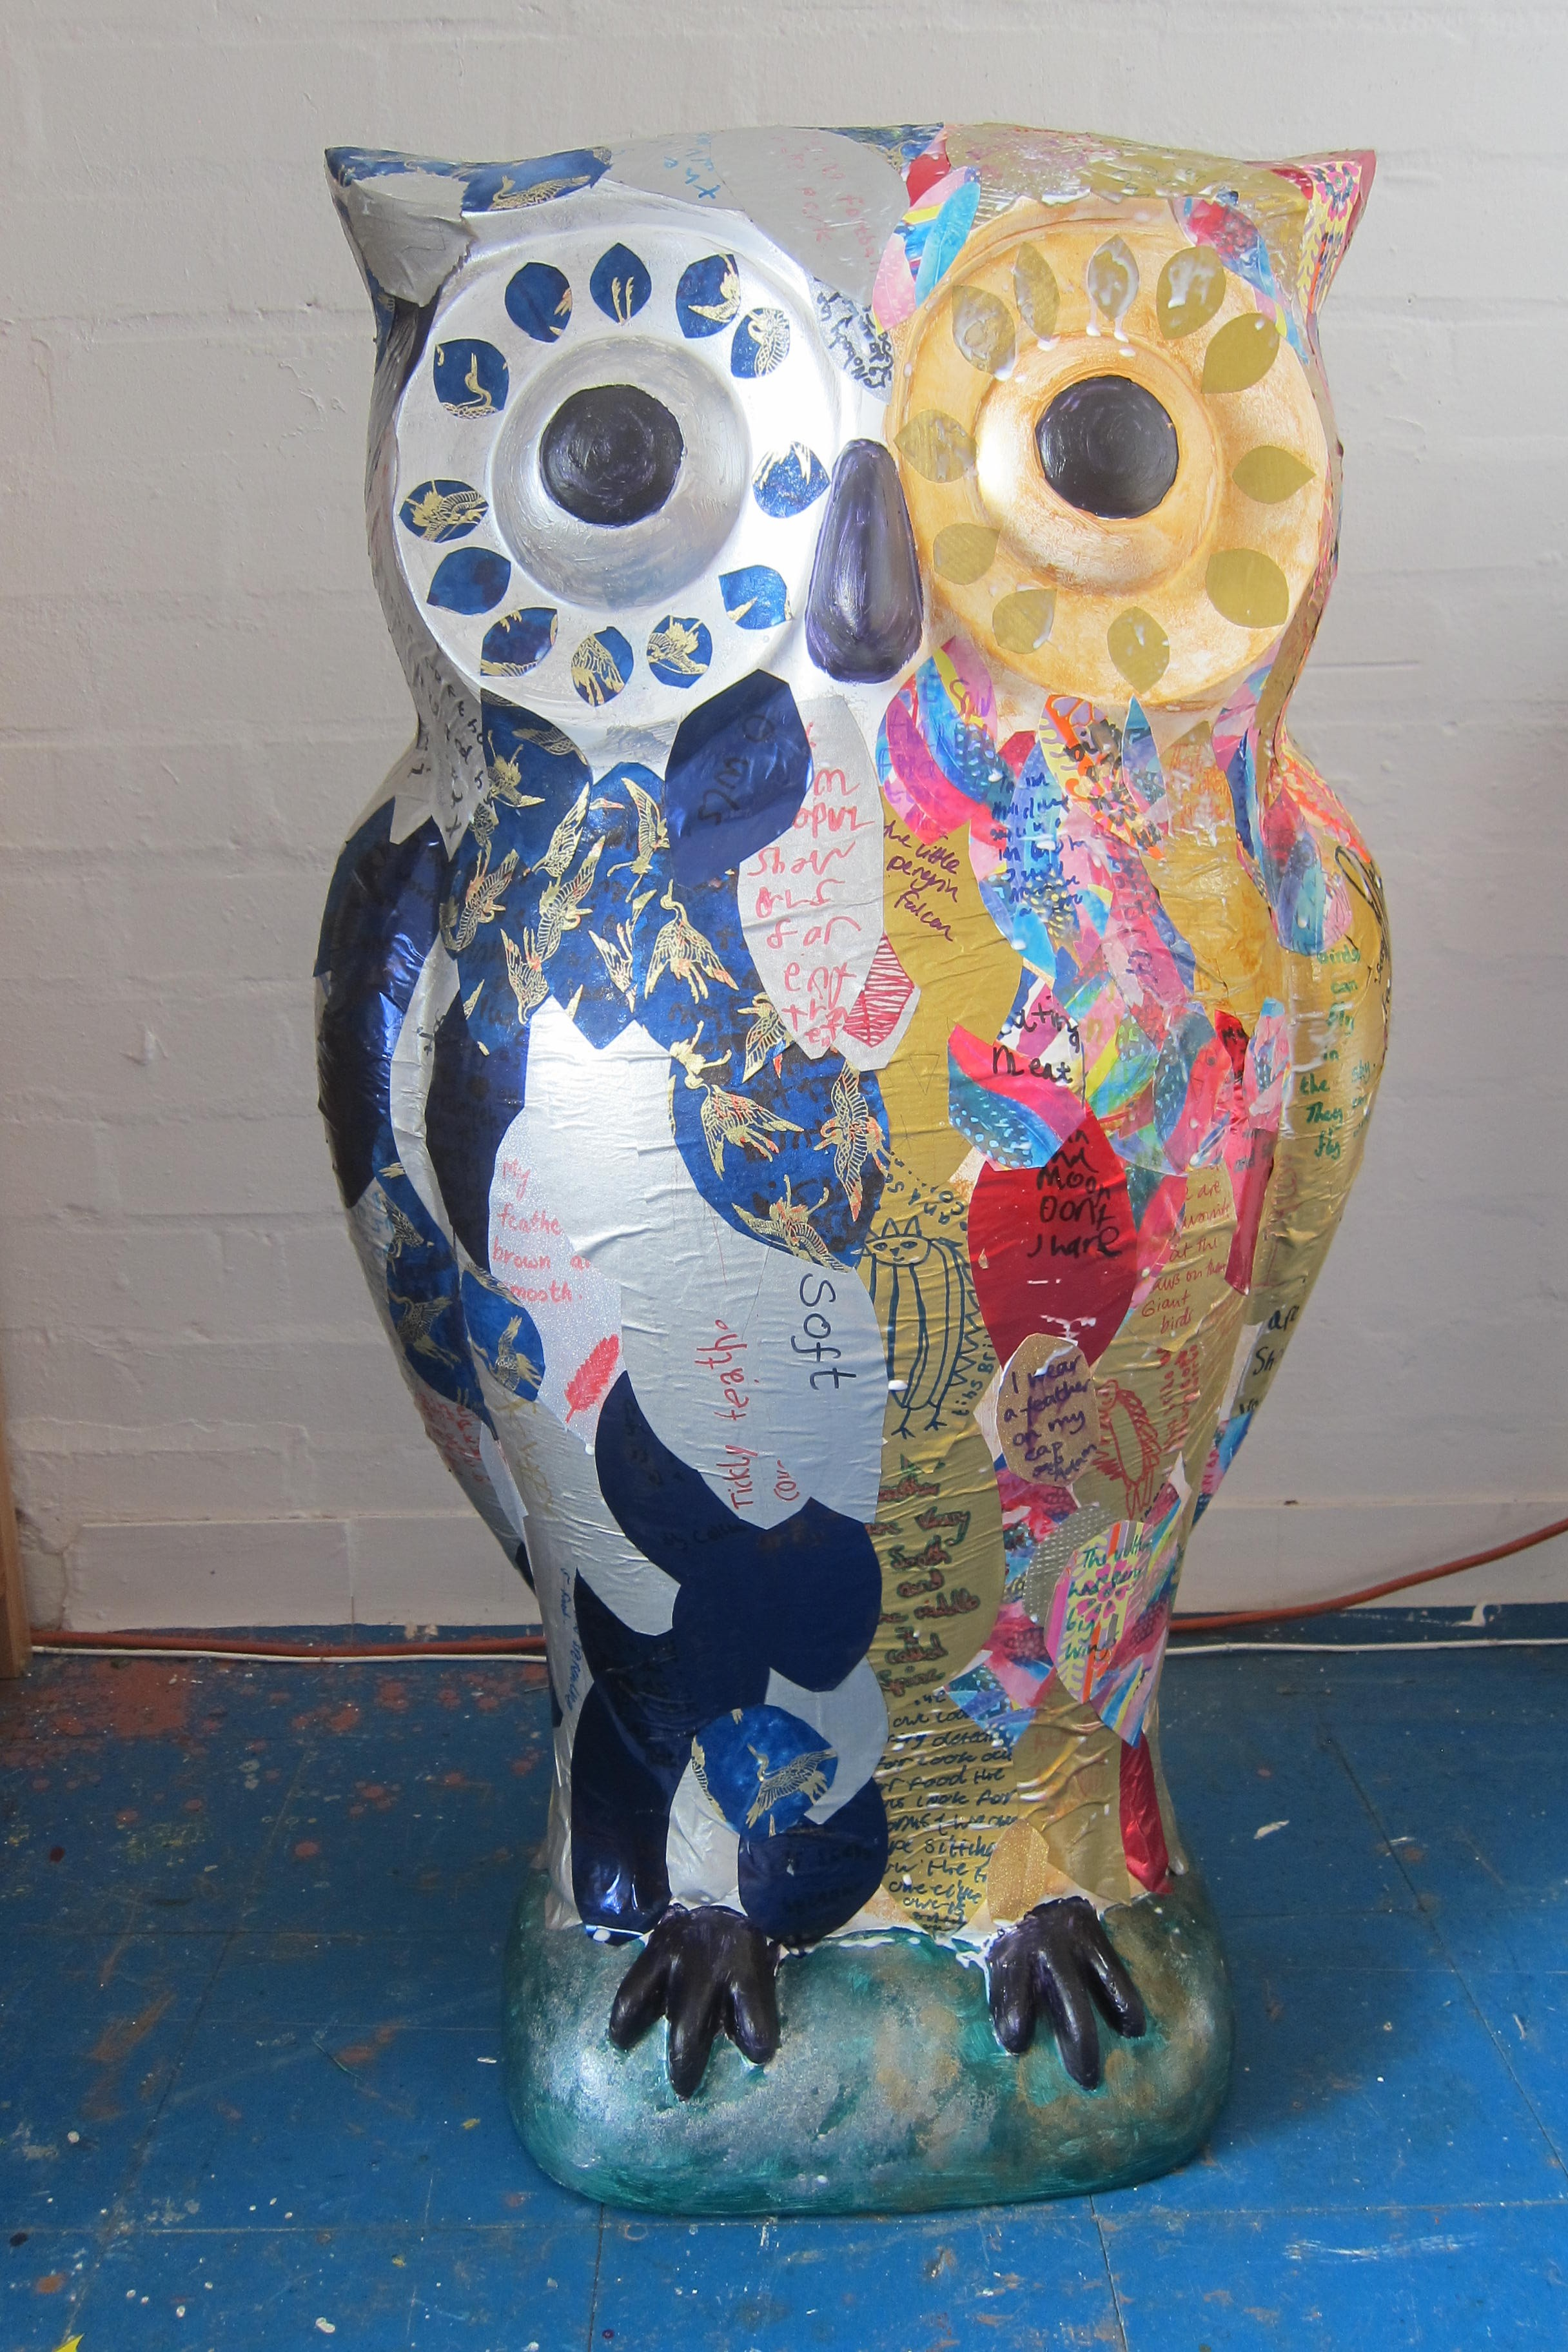 Our Owlet, Parliament of Owls, lit by moonlight on one side and sunlight on the other